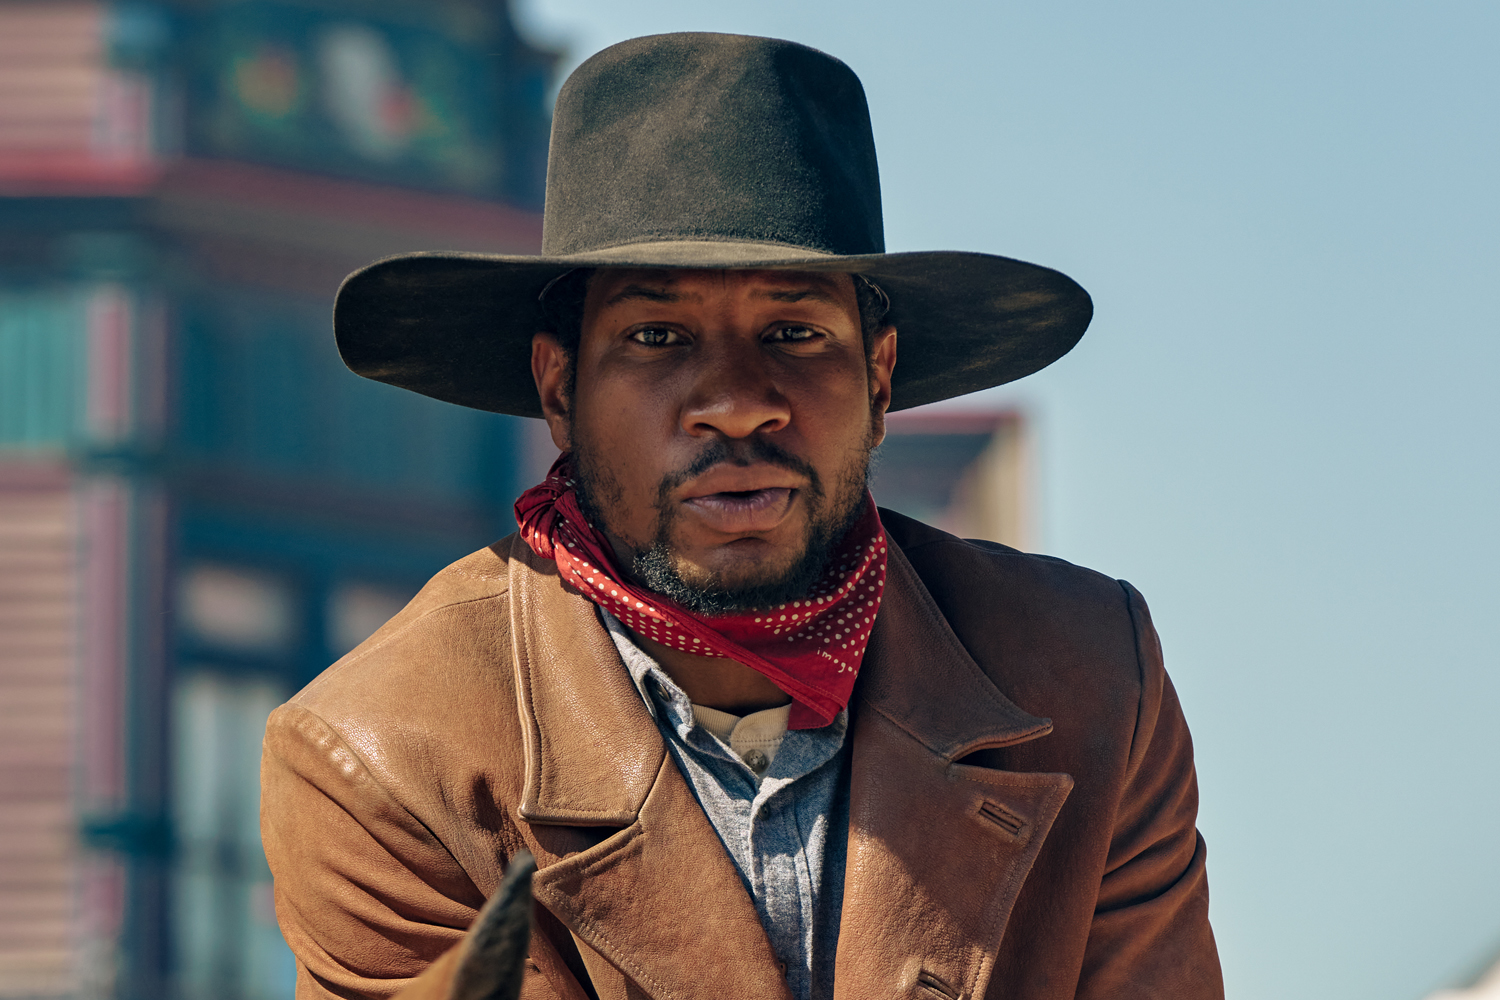 JONATHAN MAJORS as NAT LOVE in THE HARDER THEY FALL